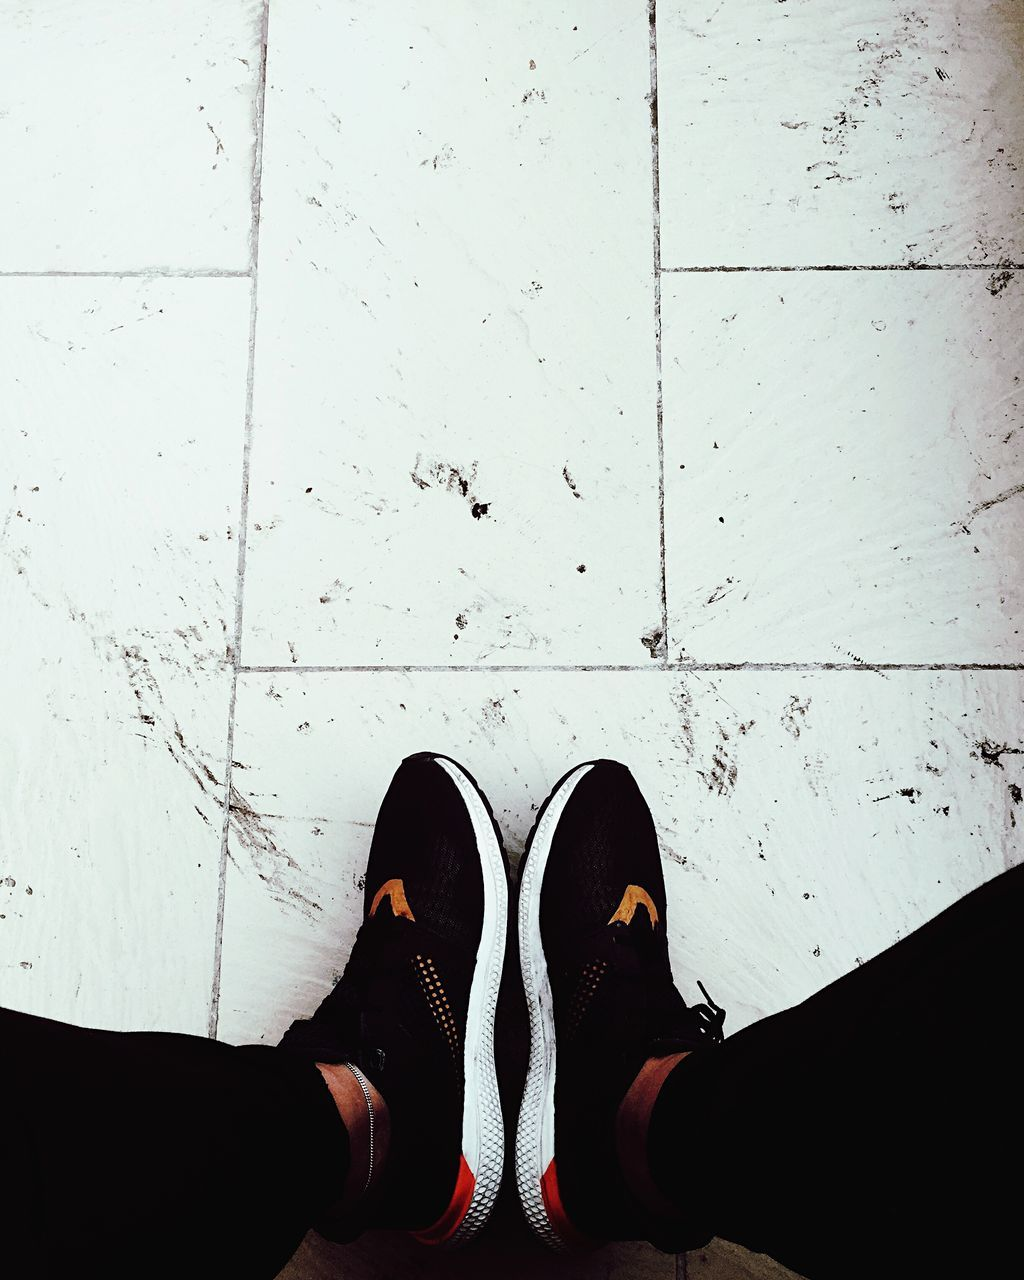 shoe, low section, human leg, standing, one person, human body part, pair, close-up, real people, outdoors, men, day, people